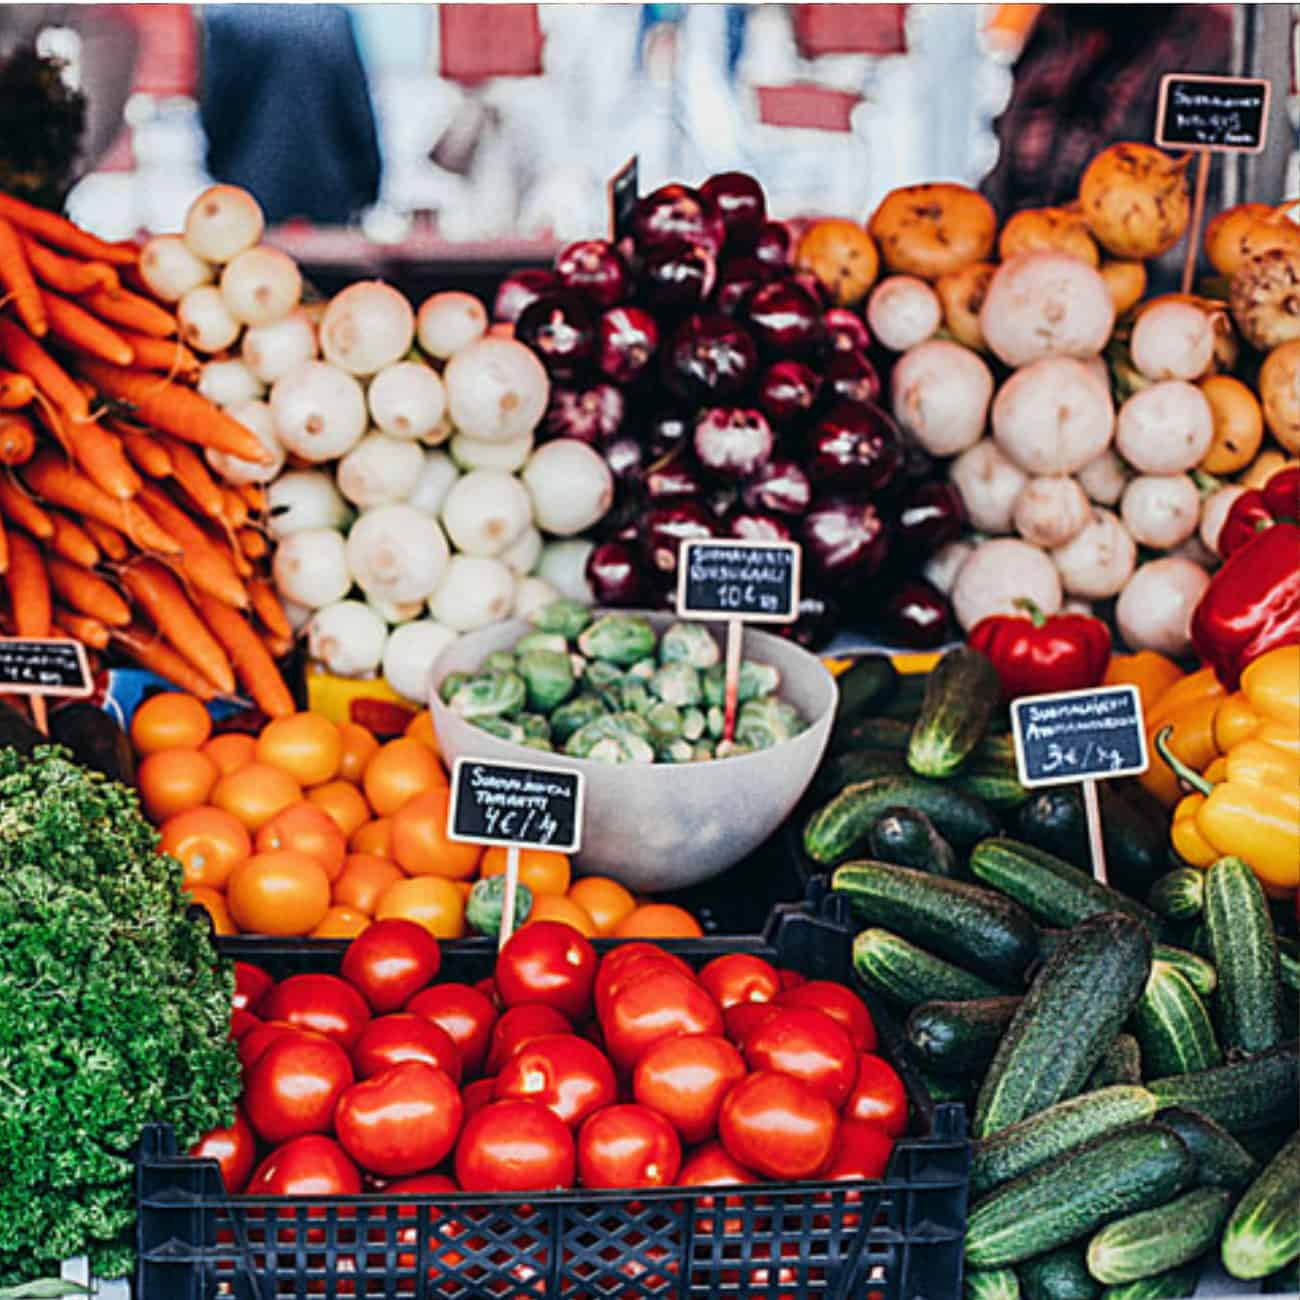 tomatoes, carrots, mushrooms, eggplant, brussels sprouts and more seasonal produce on display at outdoor market.